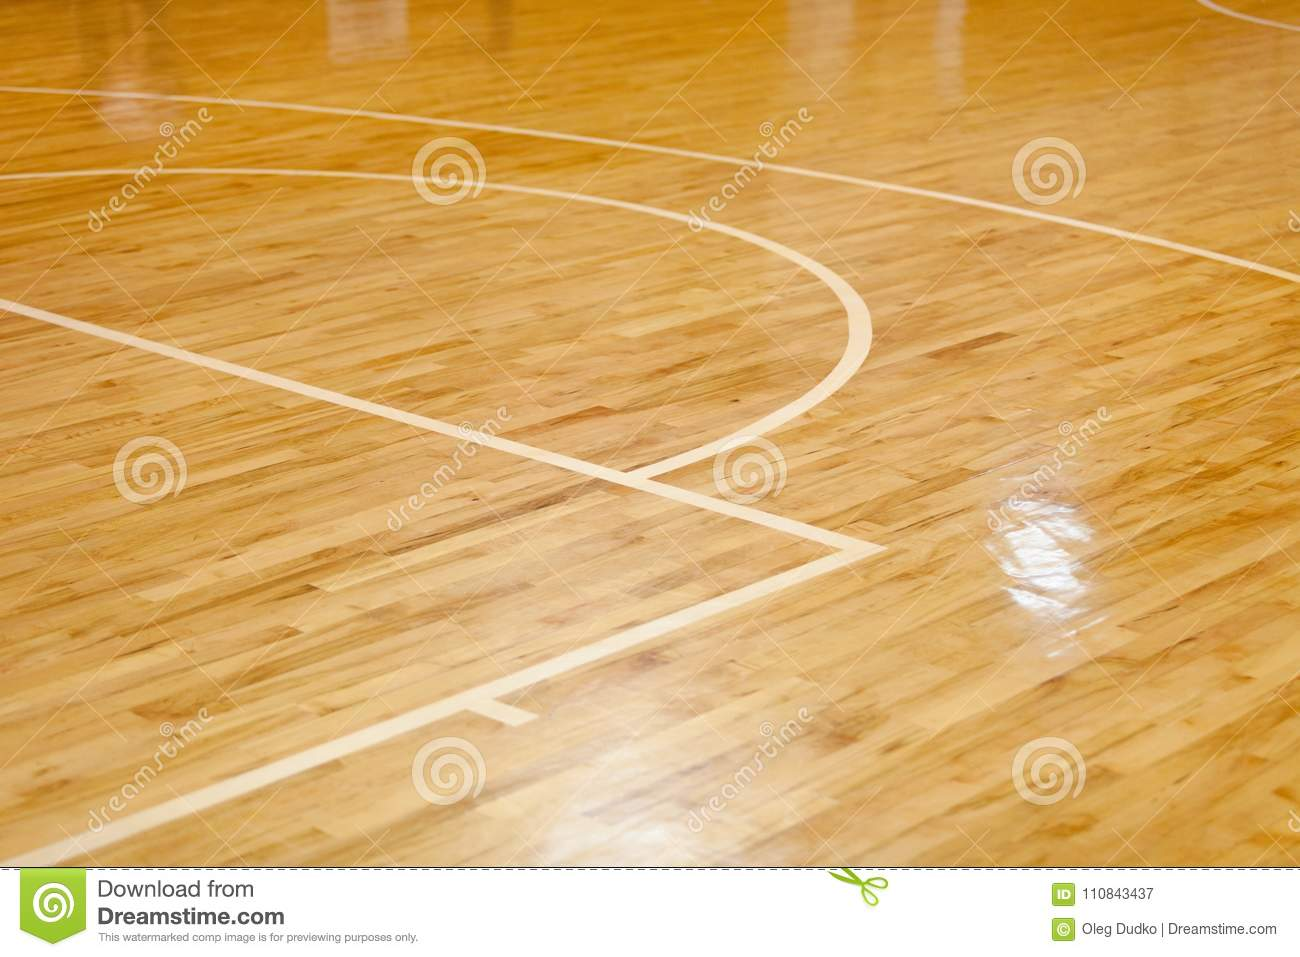 Wooden Floor Of Basketball Court Stock Image Image Of